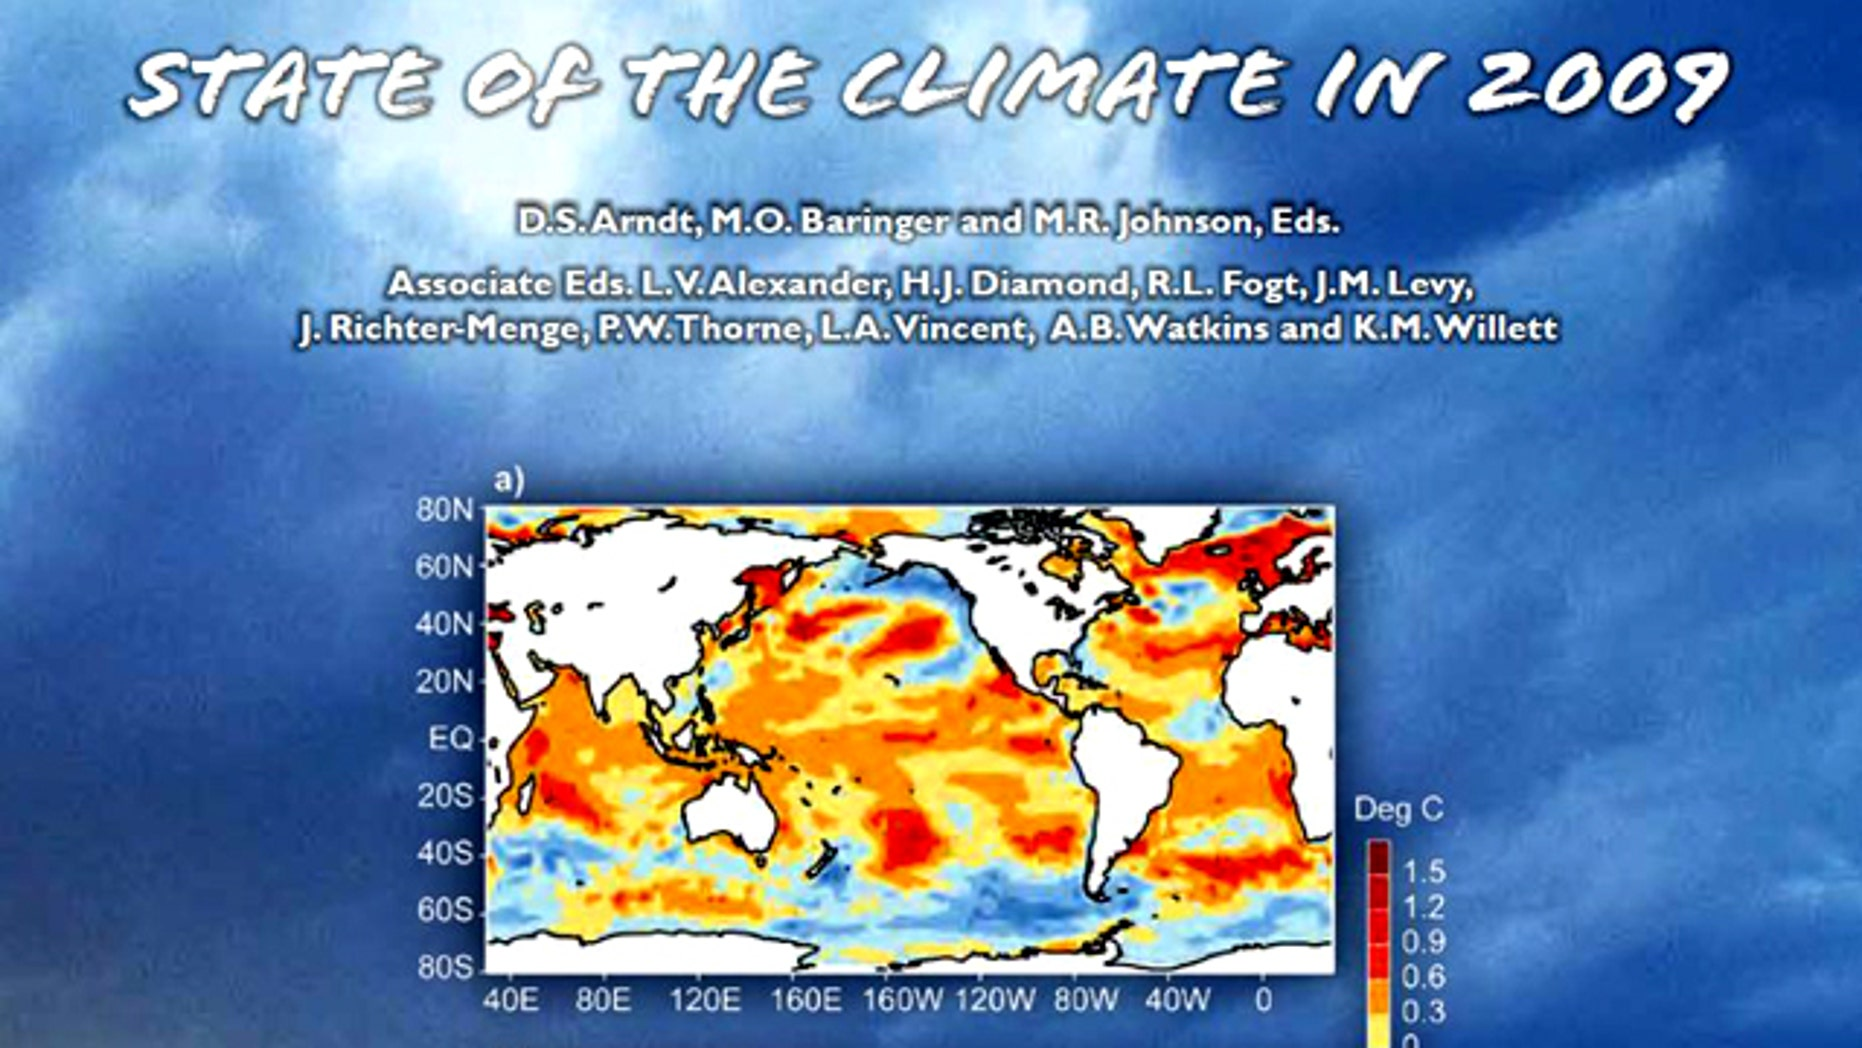 Climate scientists affirm the warming trend affecting the Earth in the latest climate change report by the National Oceanic and Atmospheric Administration.